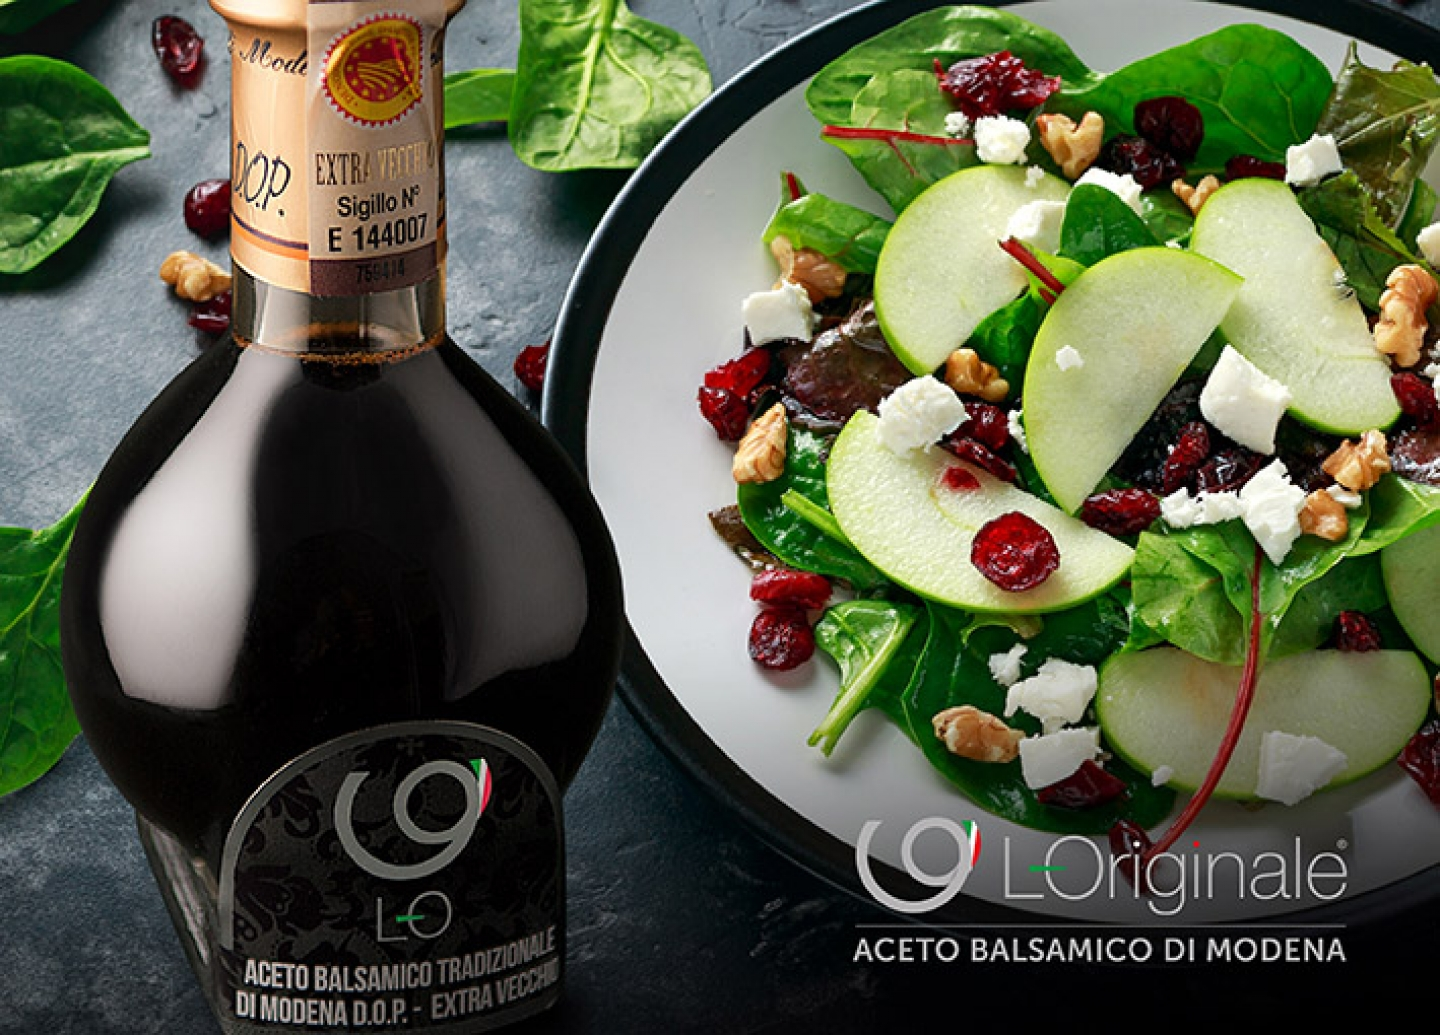 L-Originale | Original Balsamic Vinegar of Modena